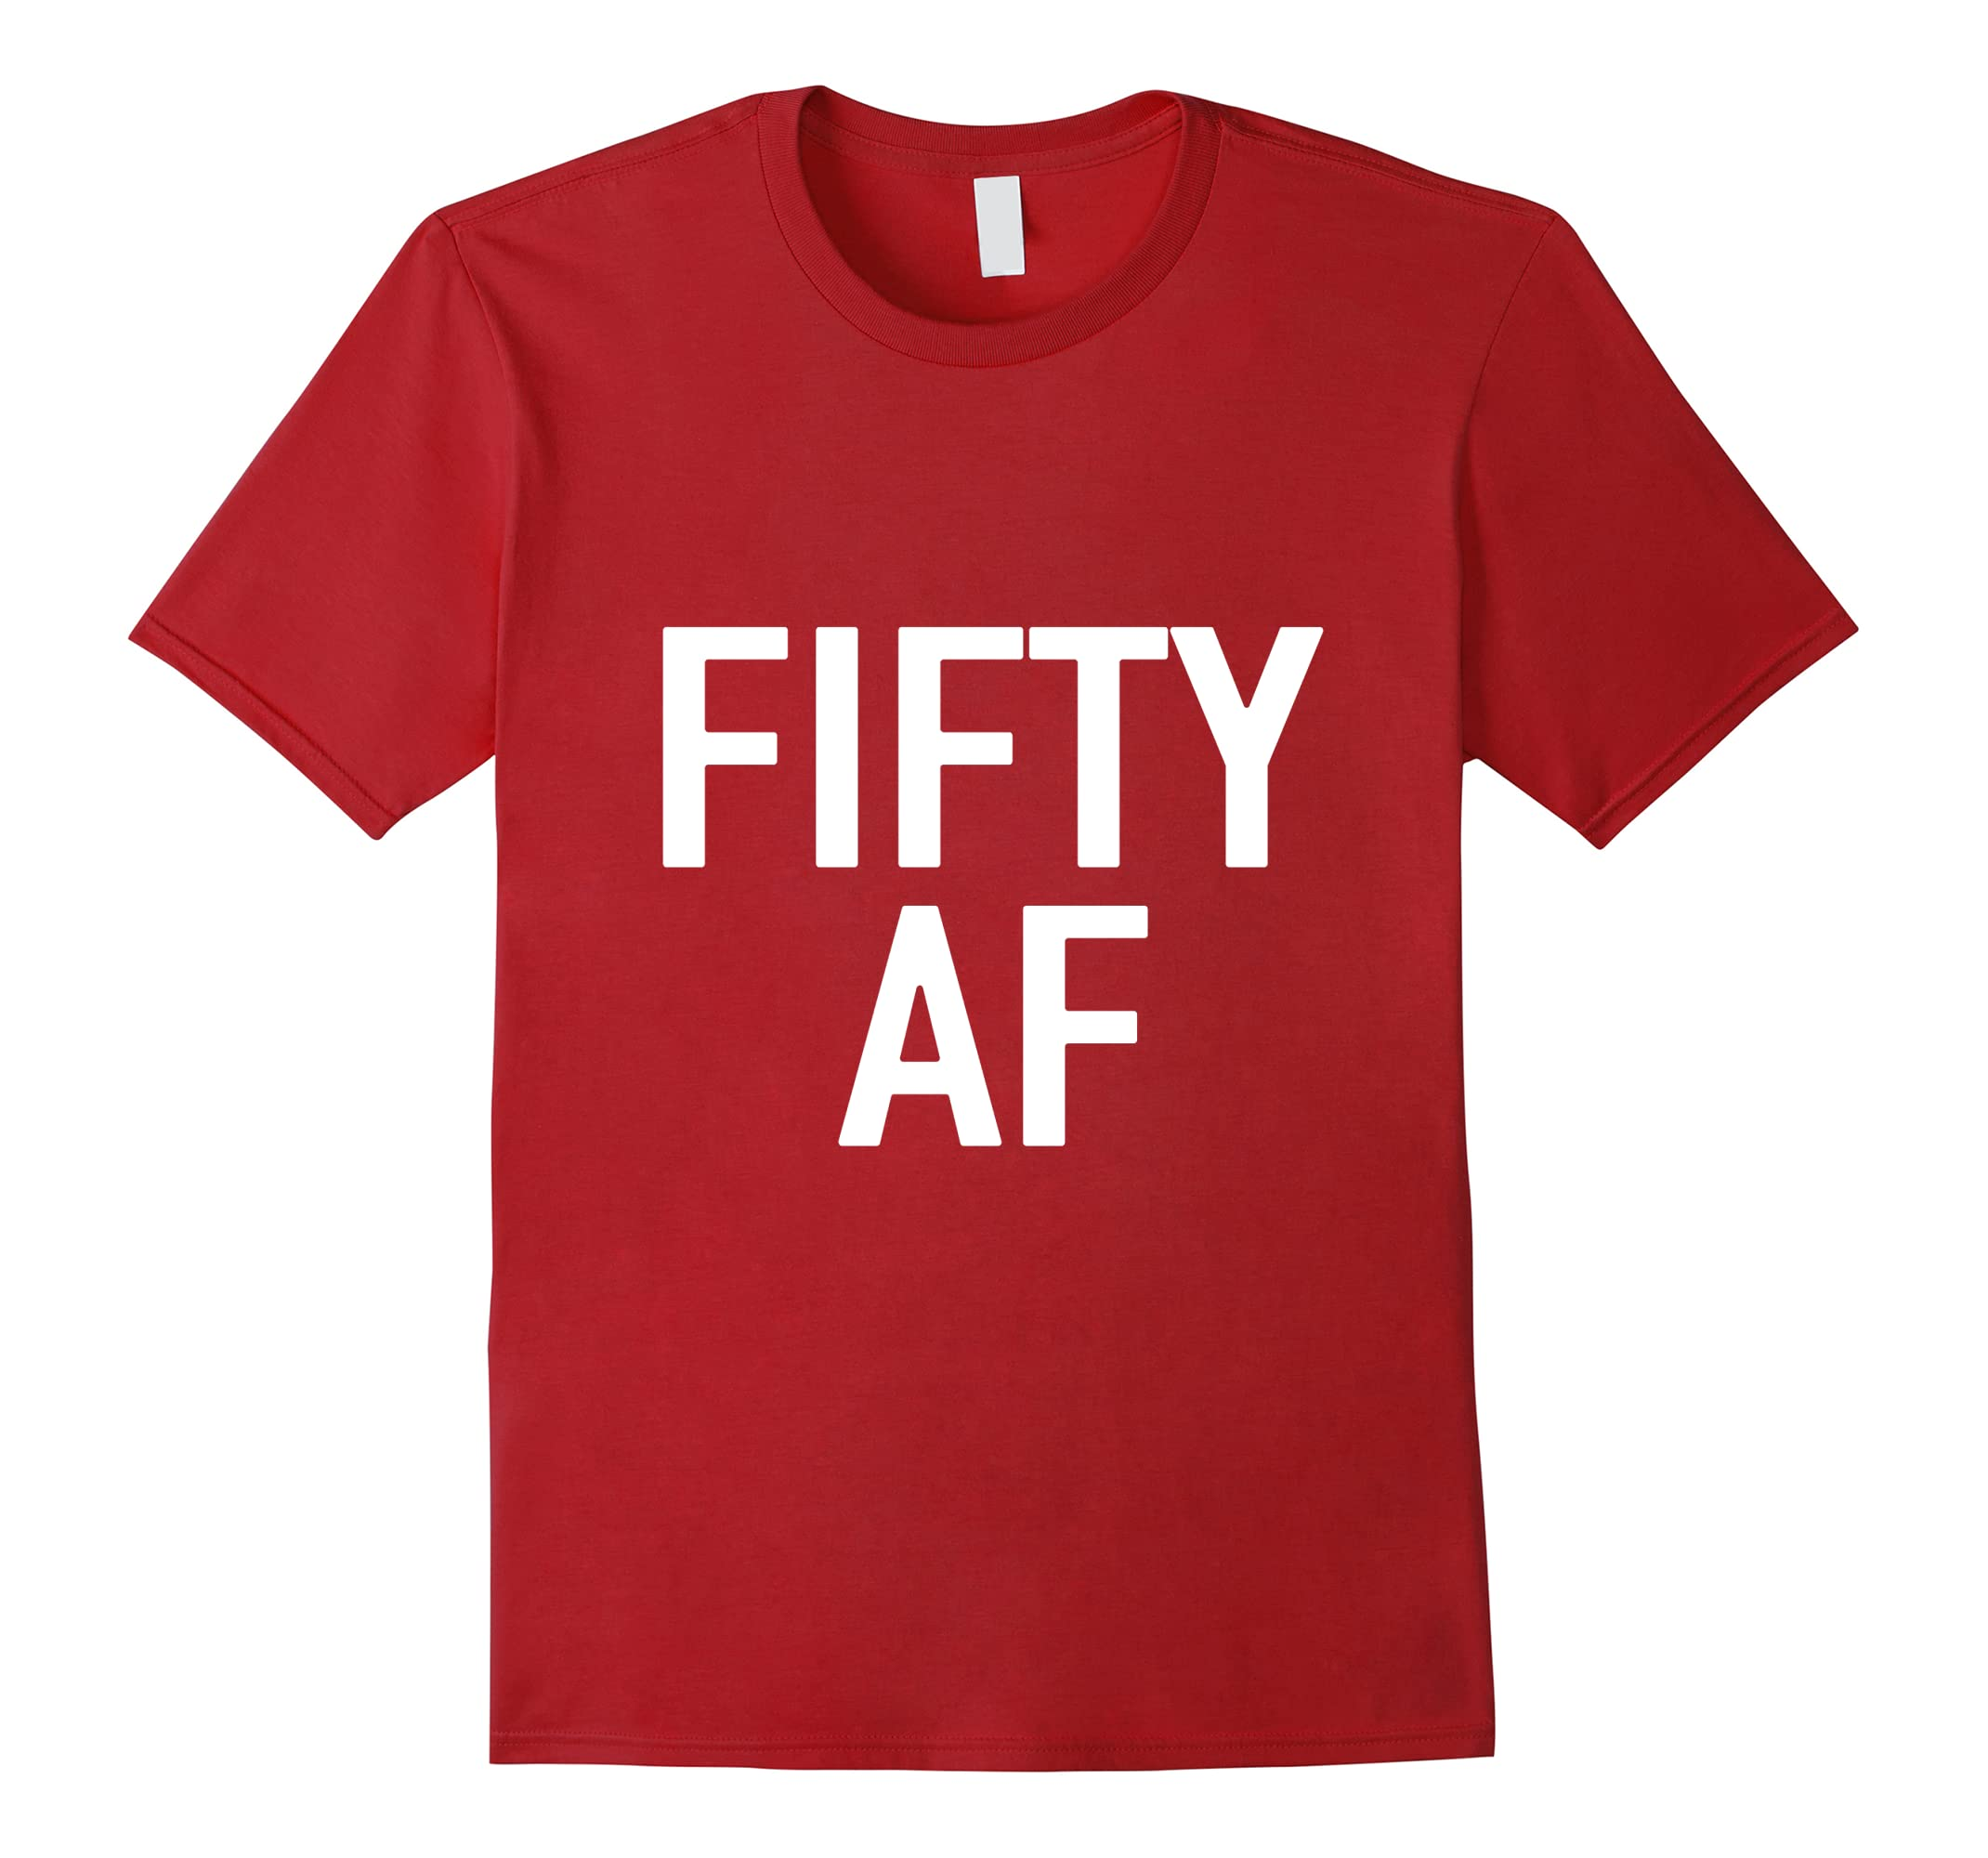 Fifty AF Happy Shirt 50th Birthday Gift Ideas For Men Women RT